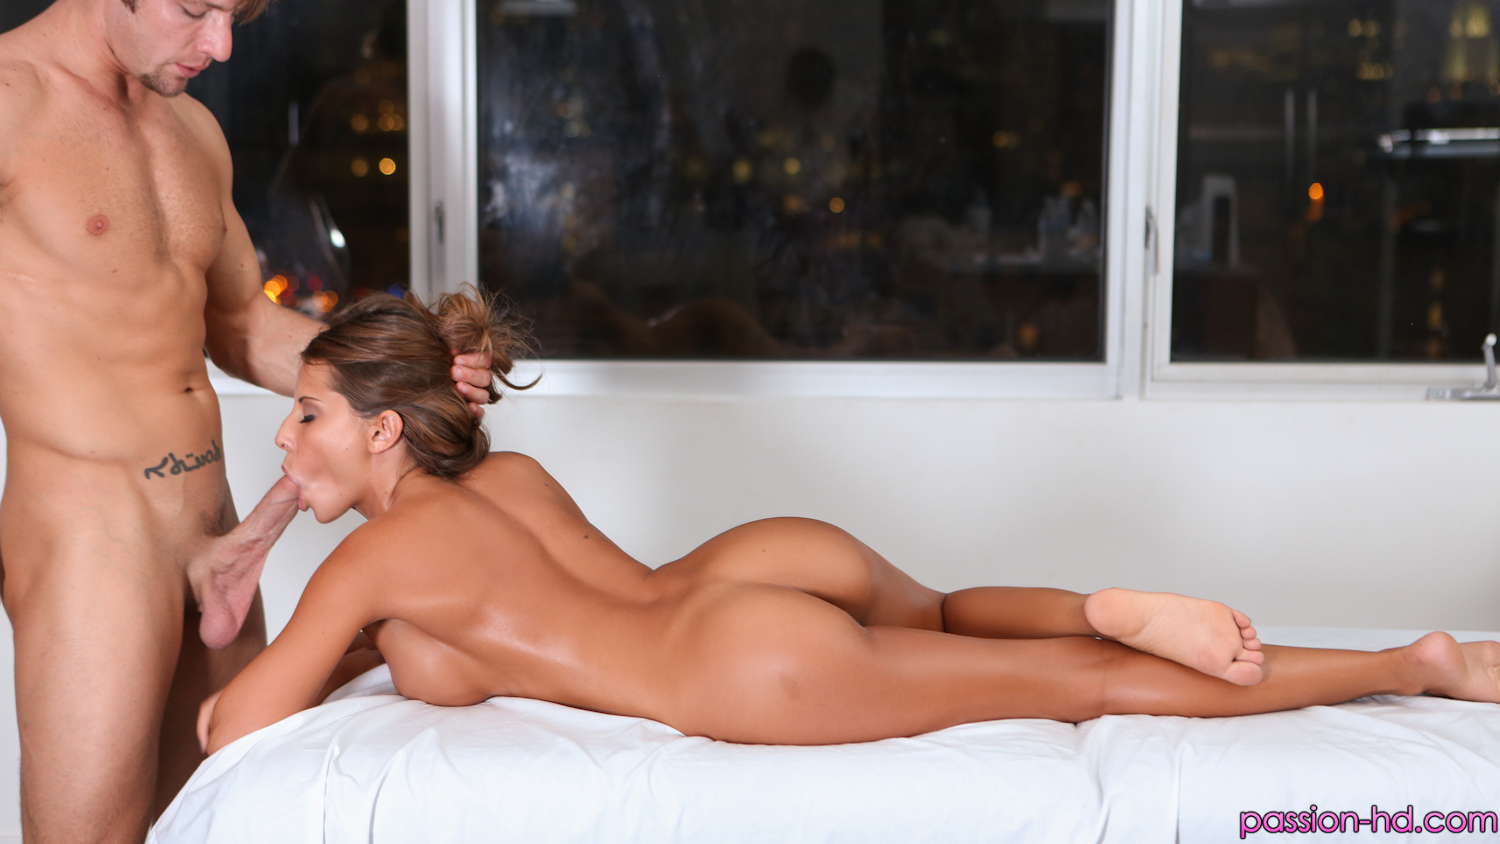 August Ames Madison Ivy